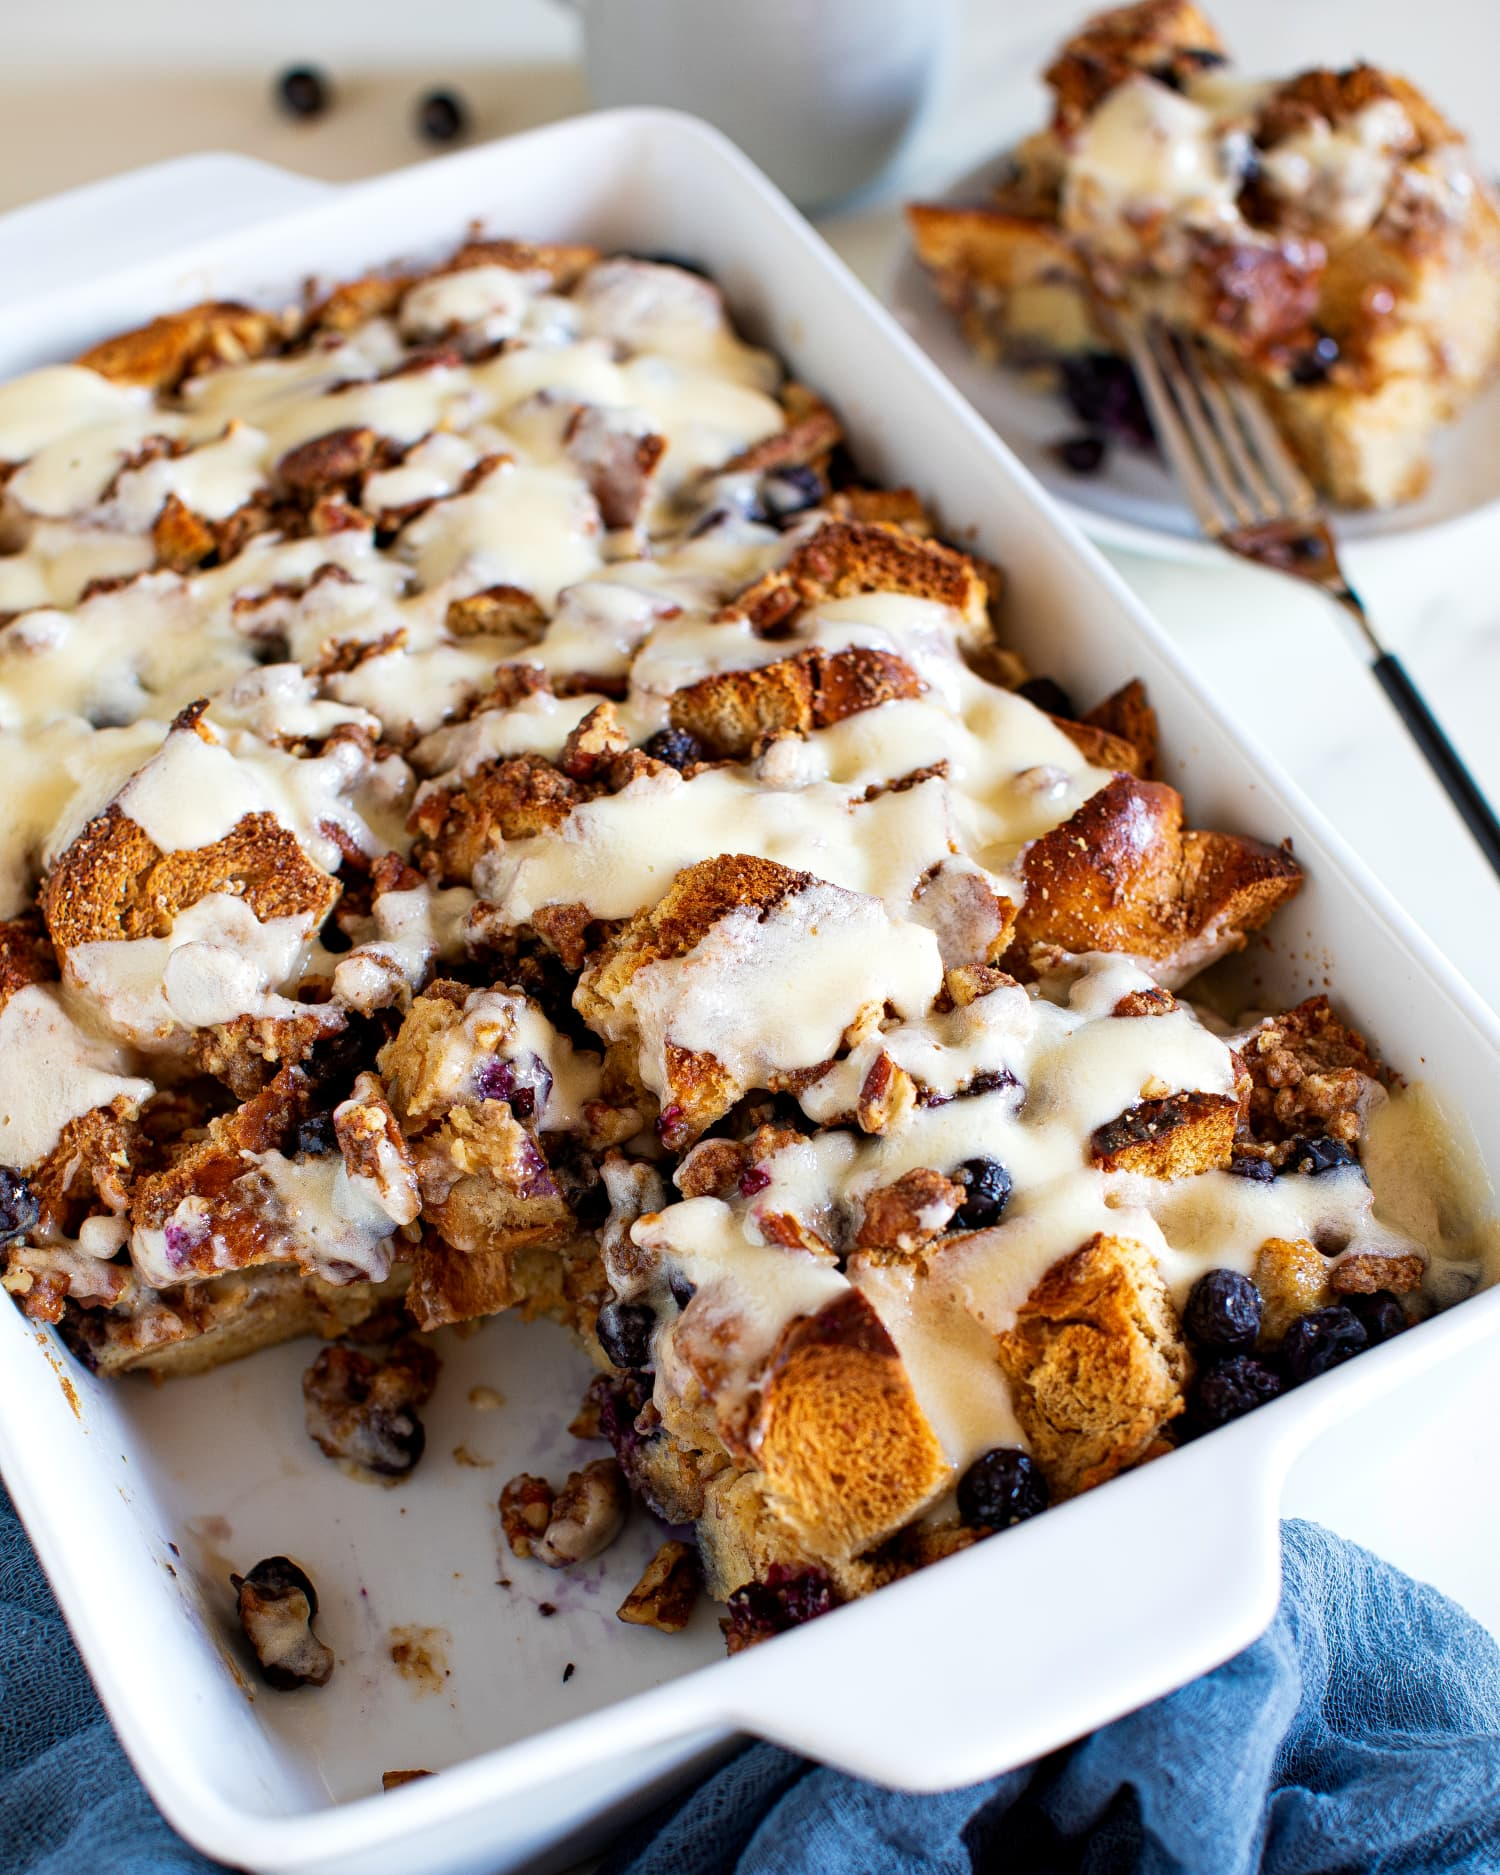 Blueberry Cheesecake French Toast Casserole Is the Perfect Make-Ahead Brunch